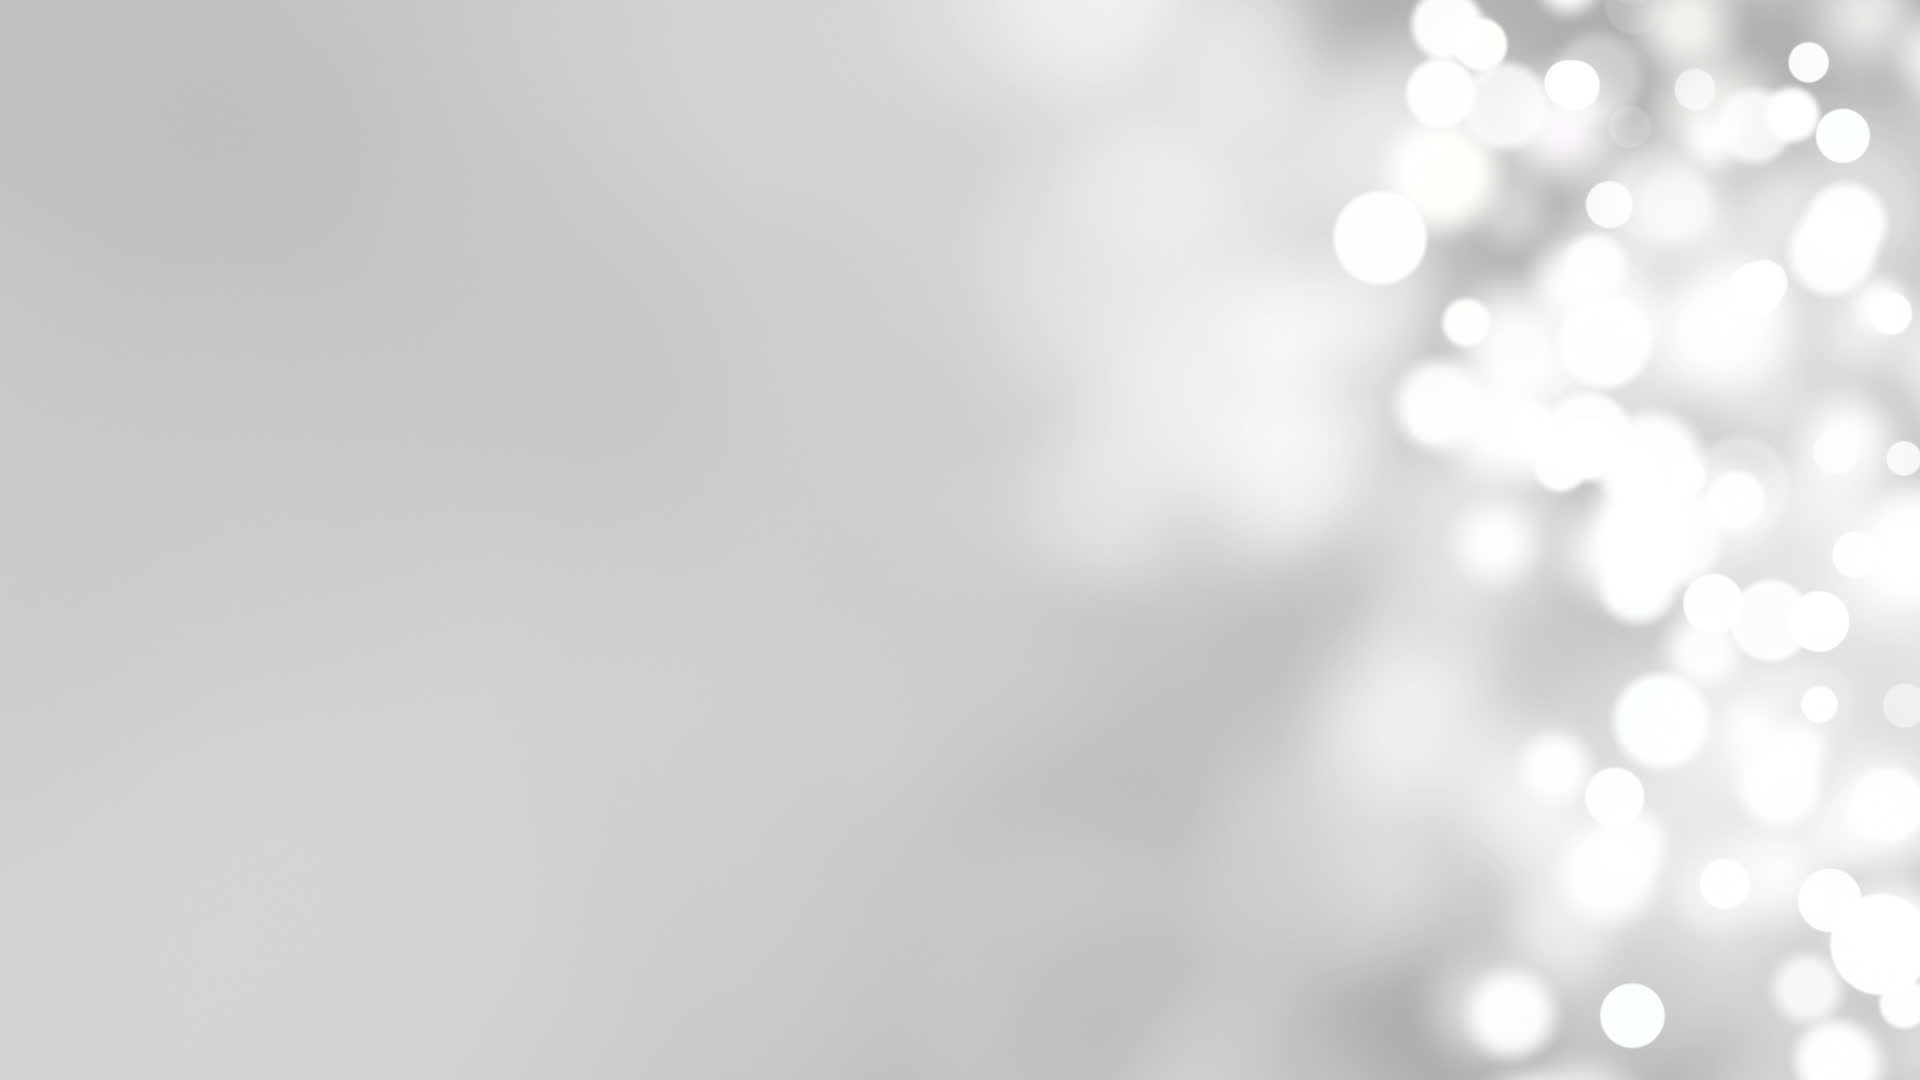 White Abstract Wallpapers 1920x1080